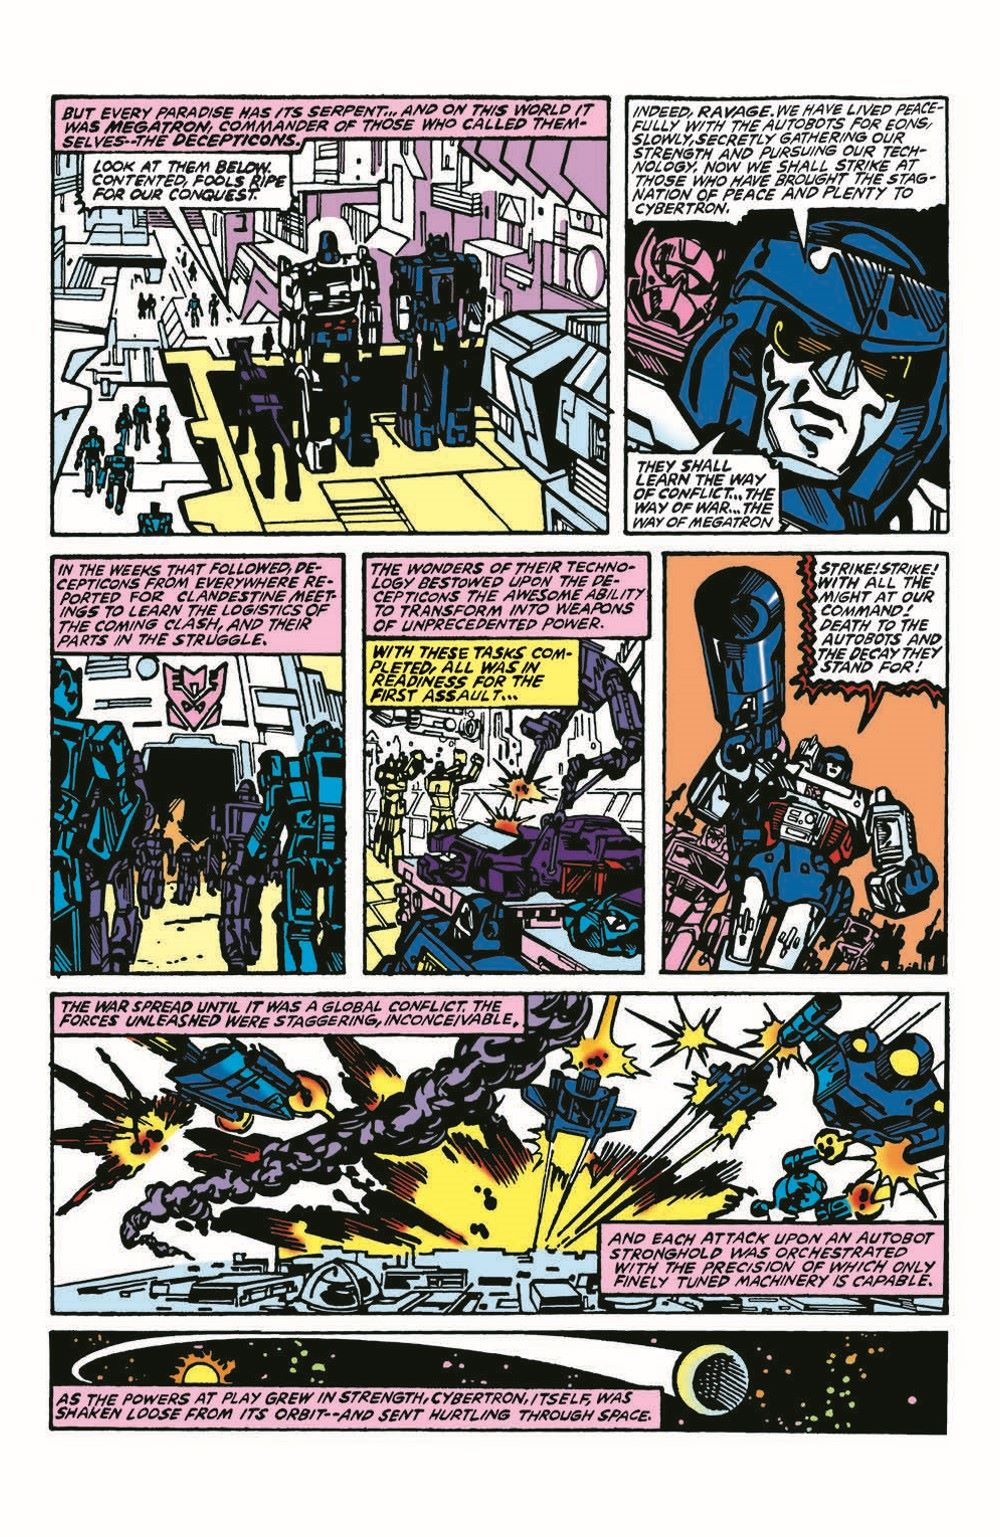 TF84-100PgGiant-pr-4 ComicList Previews: TRANSFORMERS '84 LEGENDS AND RUMORS 100-PAGE GIANT #1